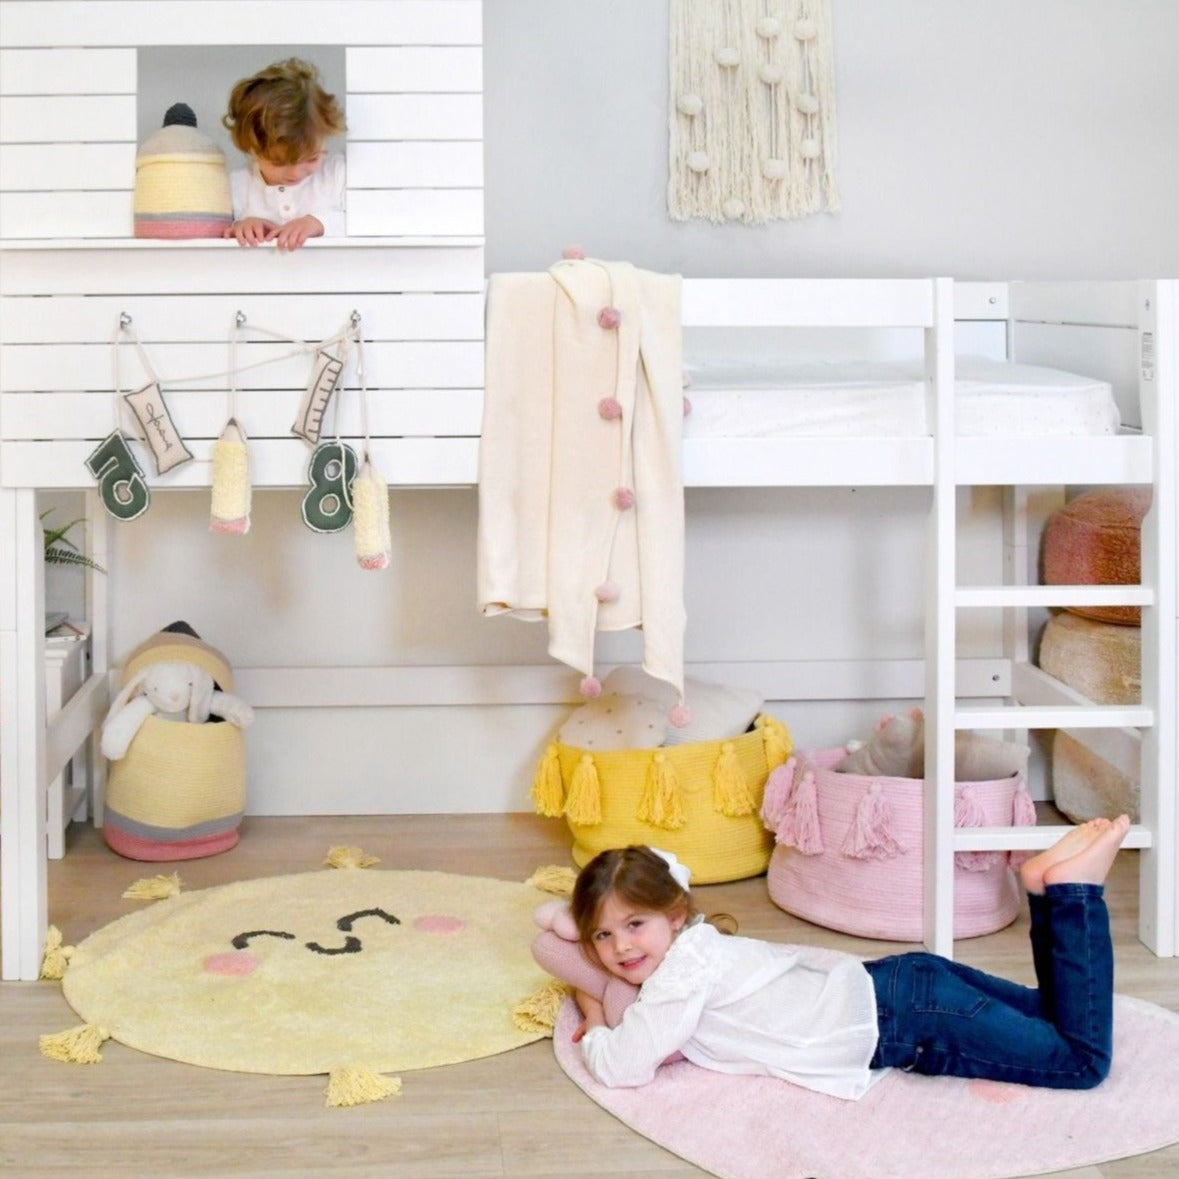 This smiling sunshine rug brings positive vibes to any kid's room to wake up every morning in good spirits! With this beautiful rug from Lorena Canals, you can decorate your children's room with a modern and elegant style! 97% cotton, 3% other fibres, round and machine-washable (conventional washing machine with 6kg capacity), its design and neutral colour is a hit among boys and girls.